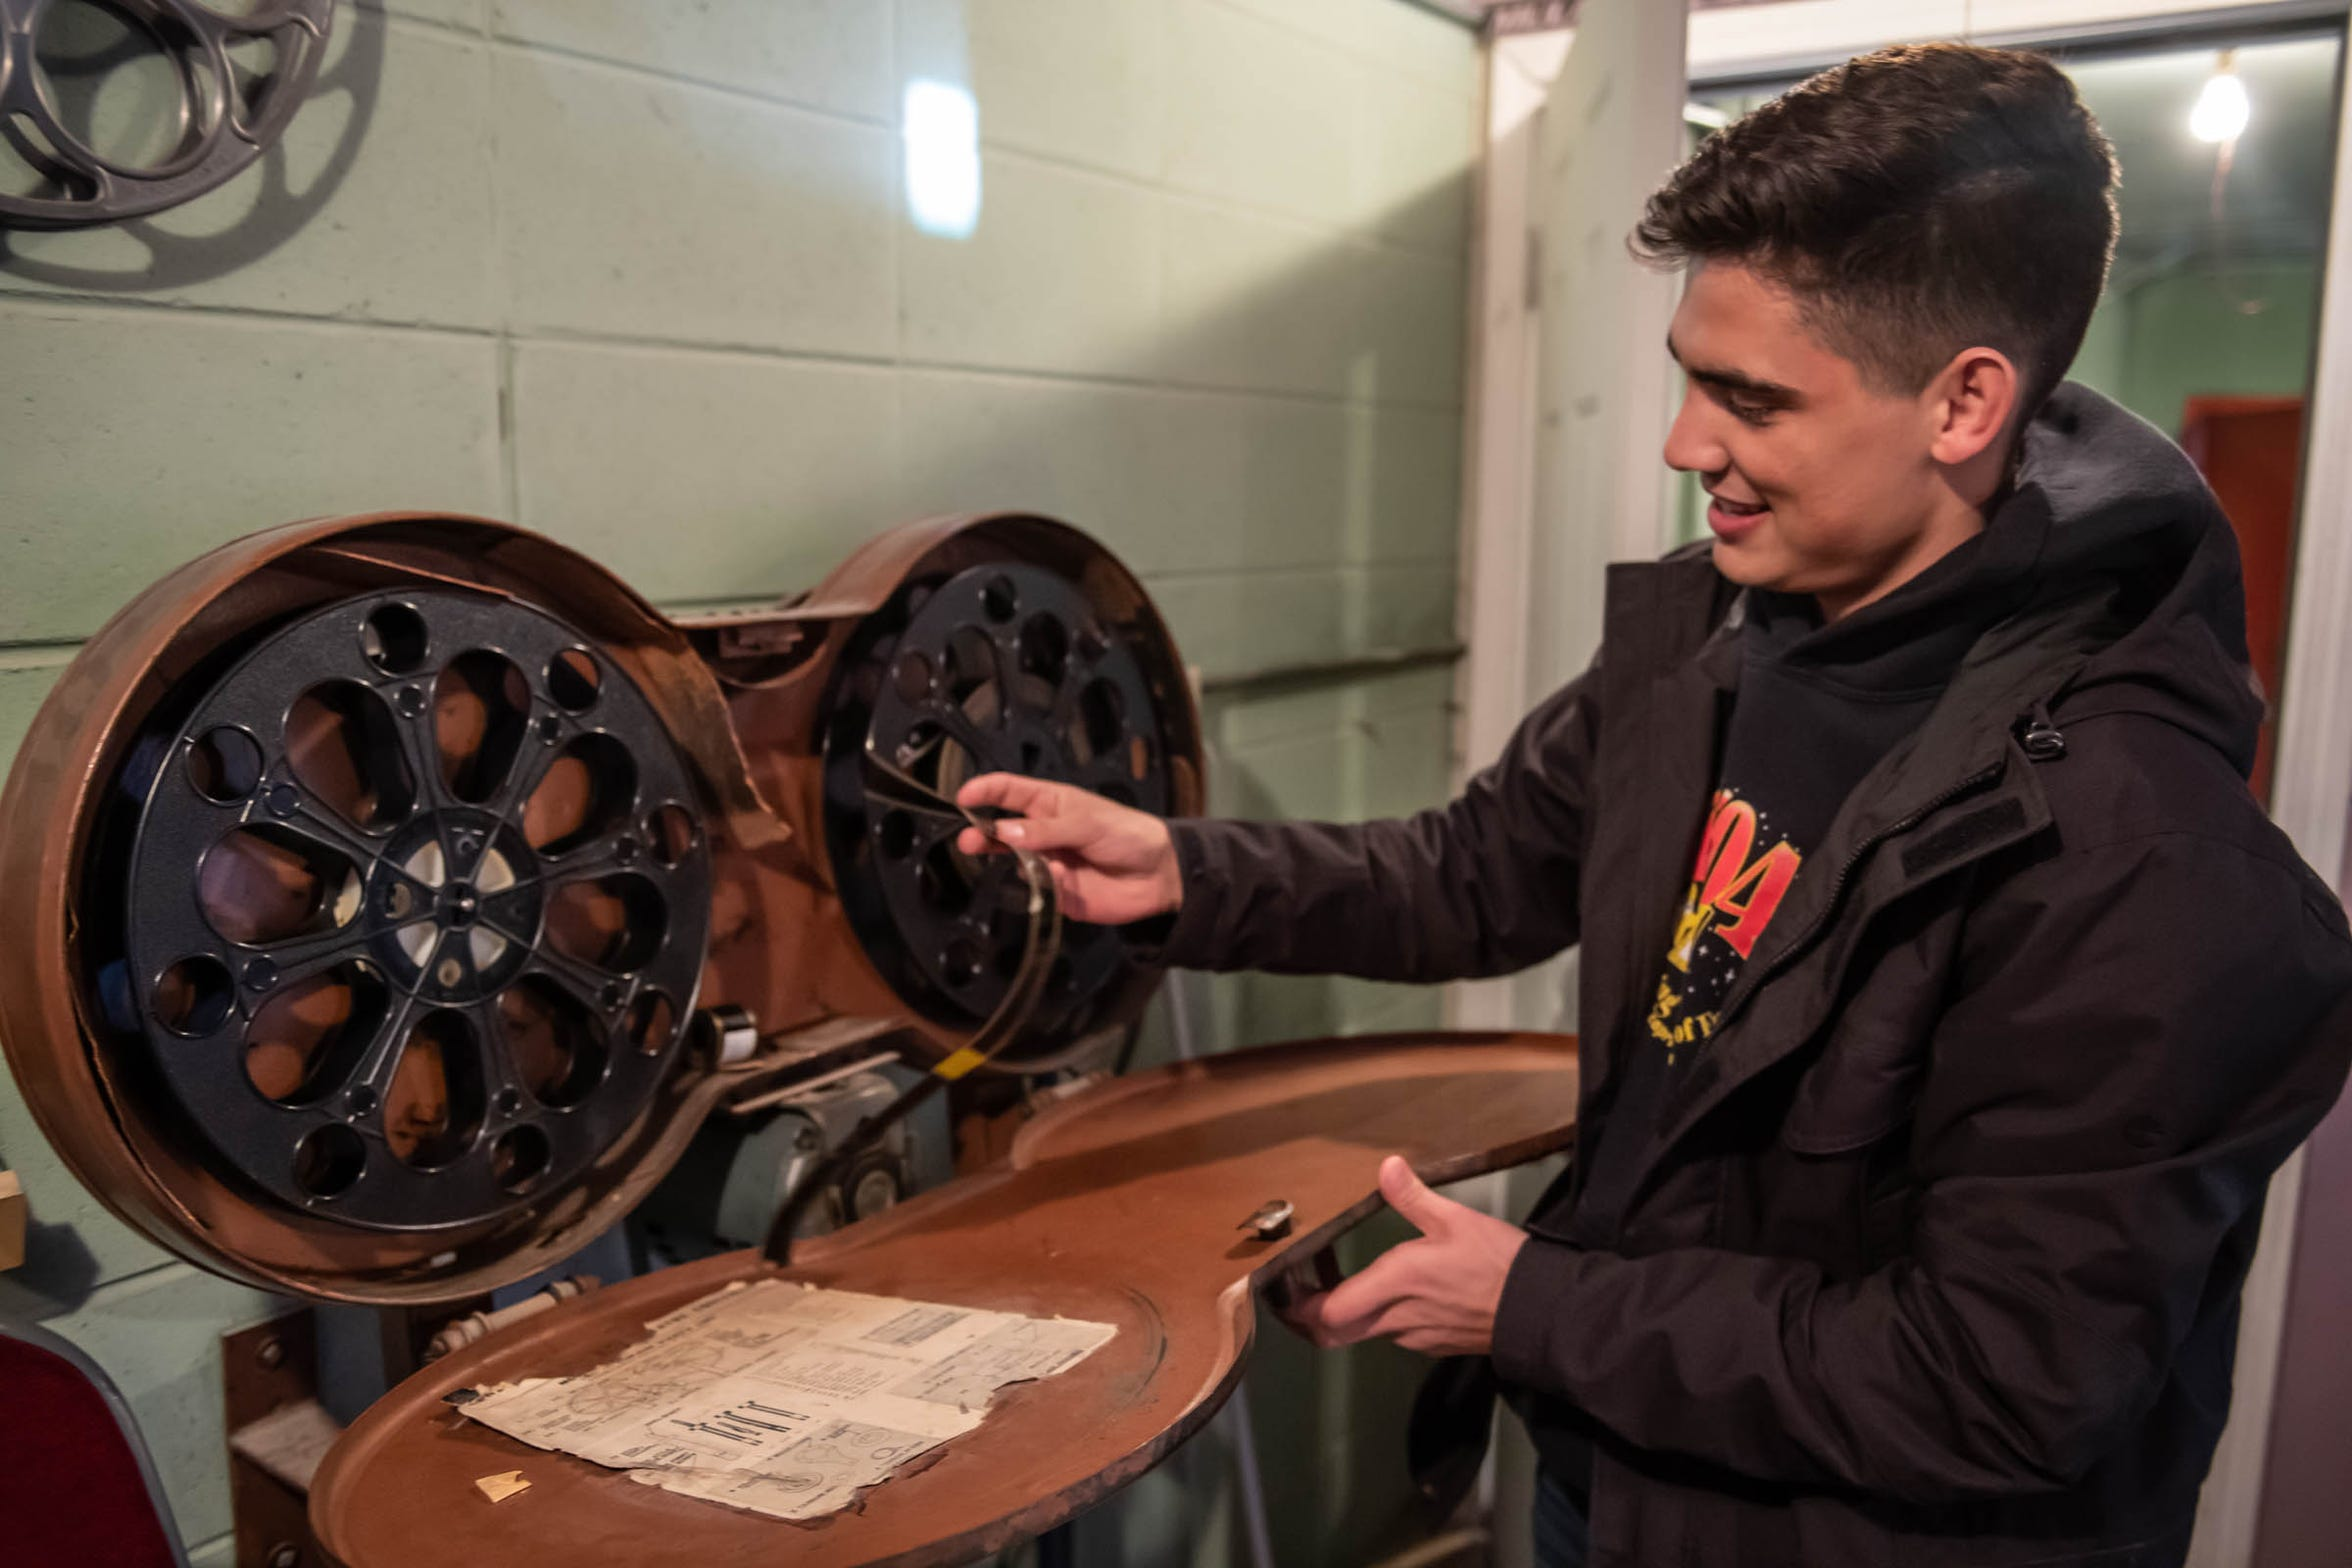 Projectionist Michael Magocs shows off film reels that are no longer used at the Capri Drive-In in Coldwater on Friday, April 5, 2019.